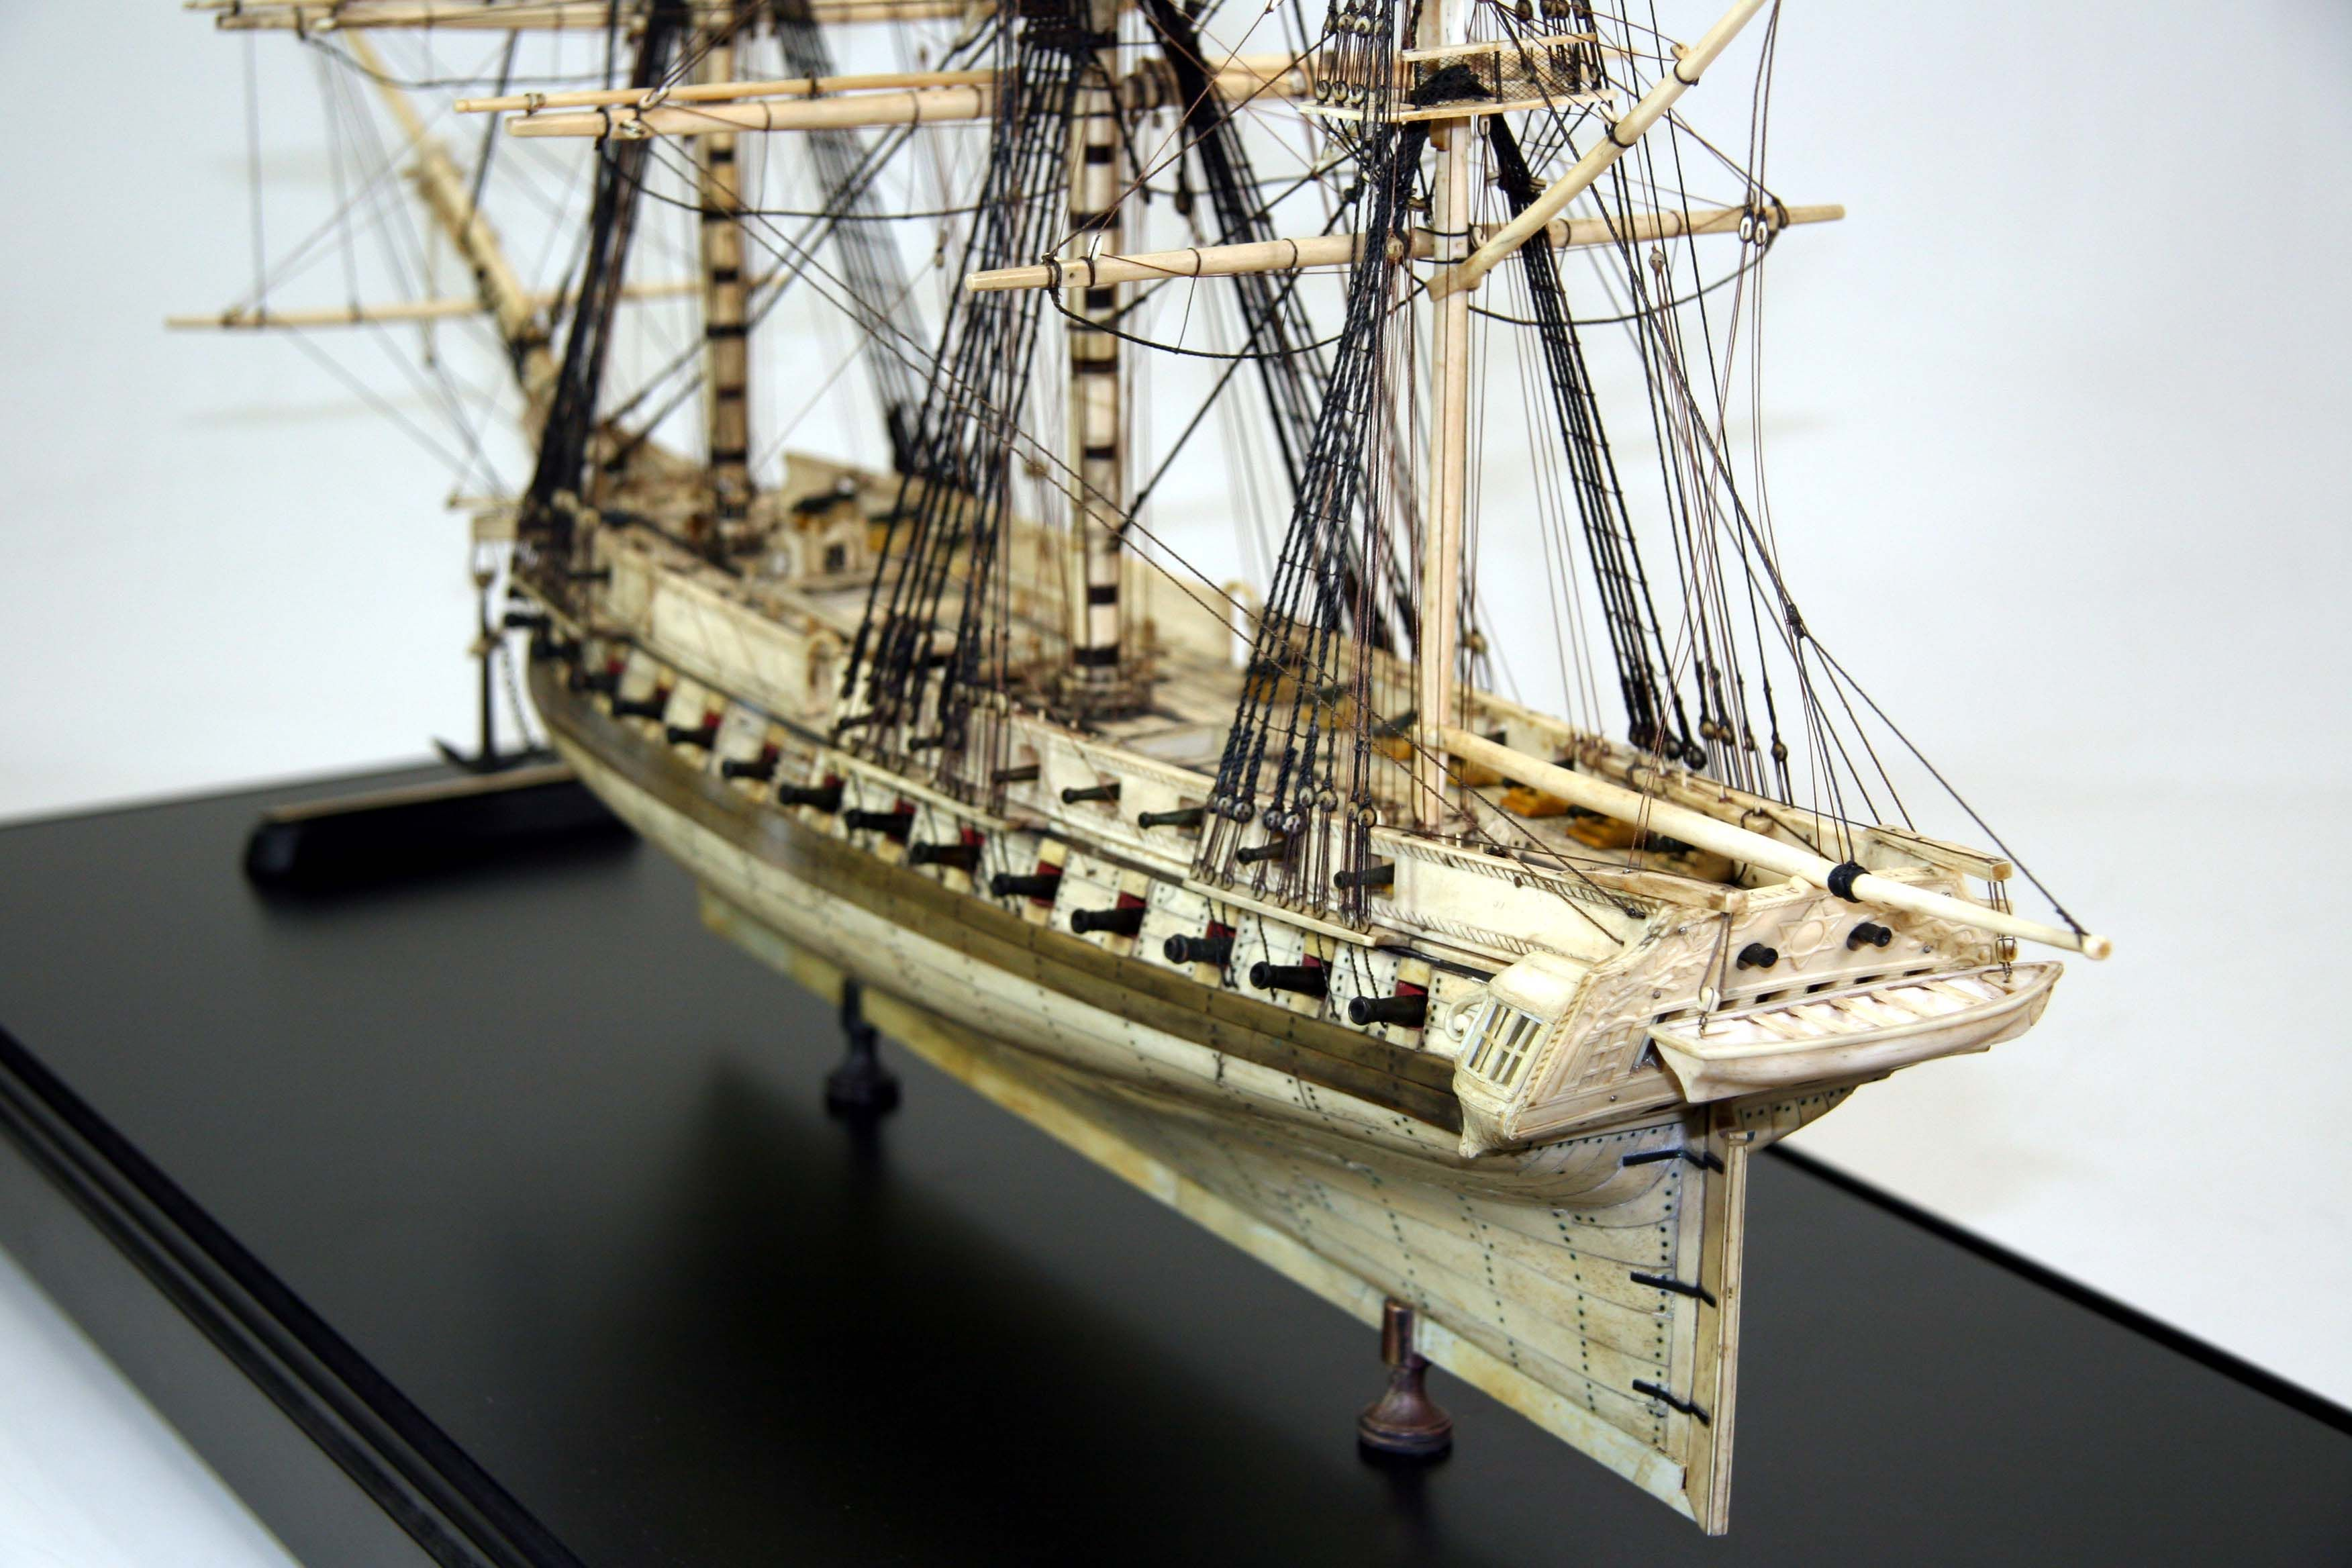 48-Gun heavy frigate 1/196 Scale Model | Ships Historical | Pinterest | Scale models, Scale and Guns